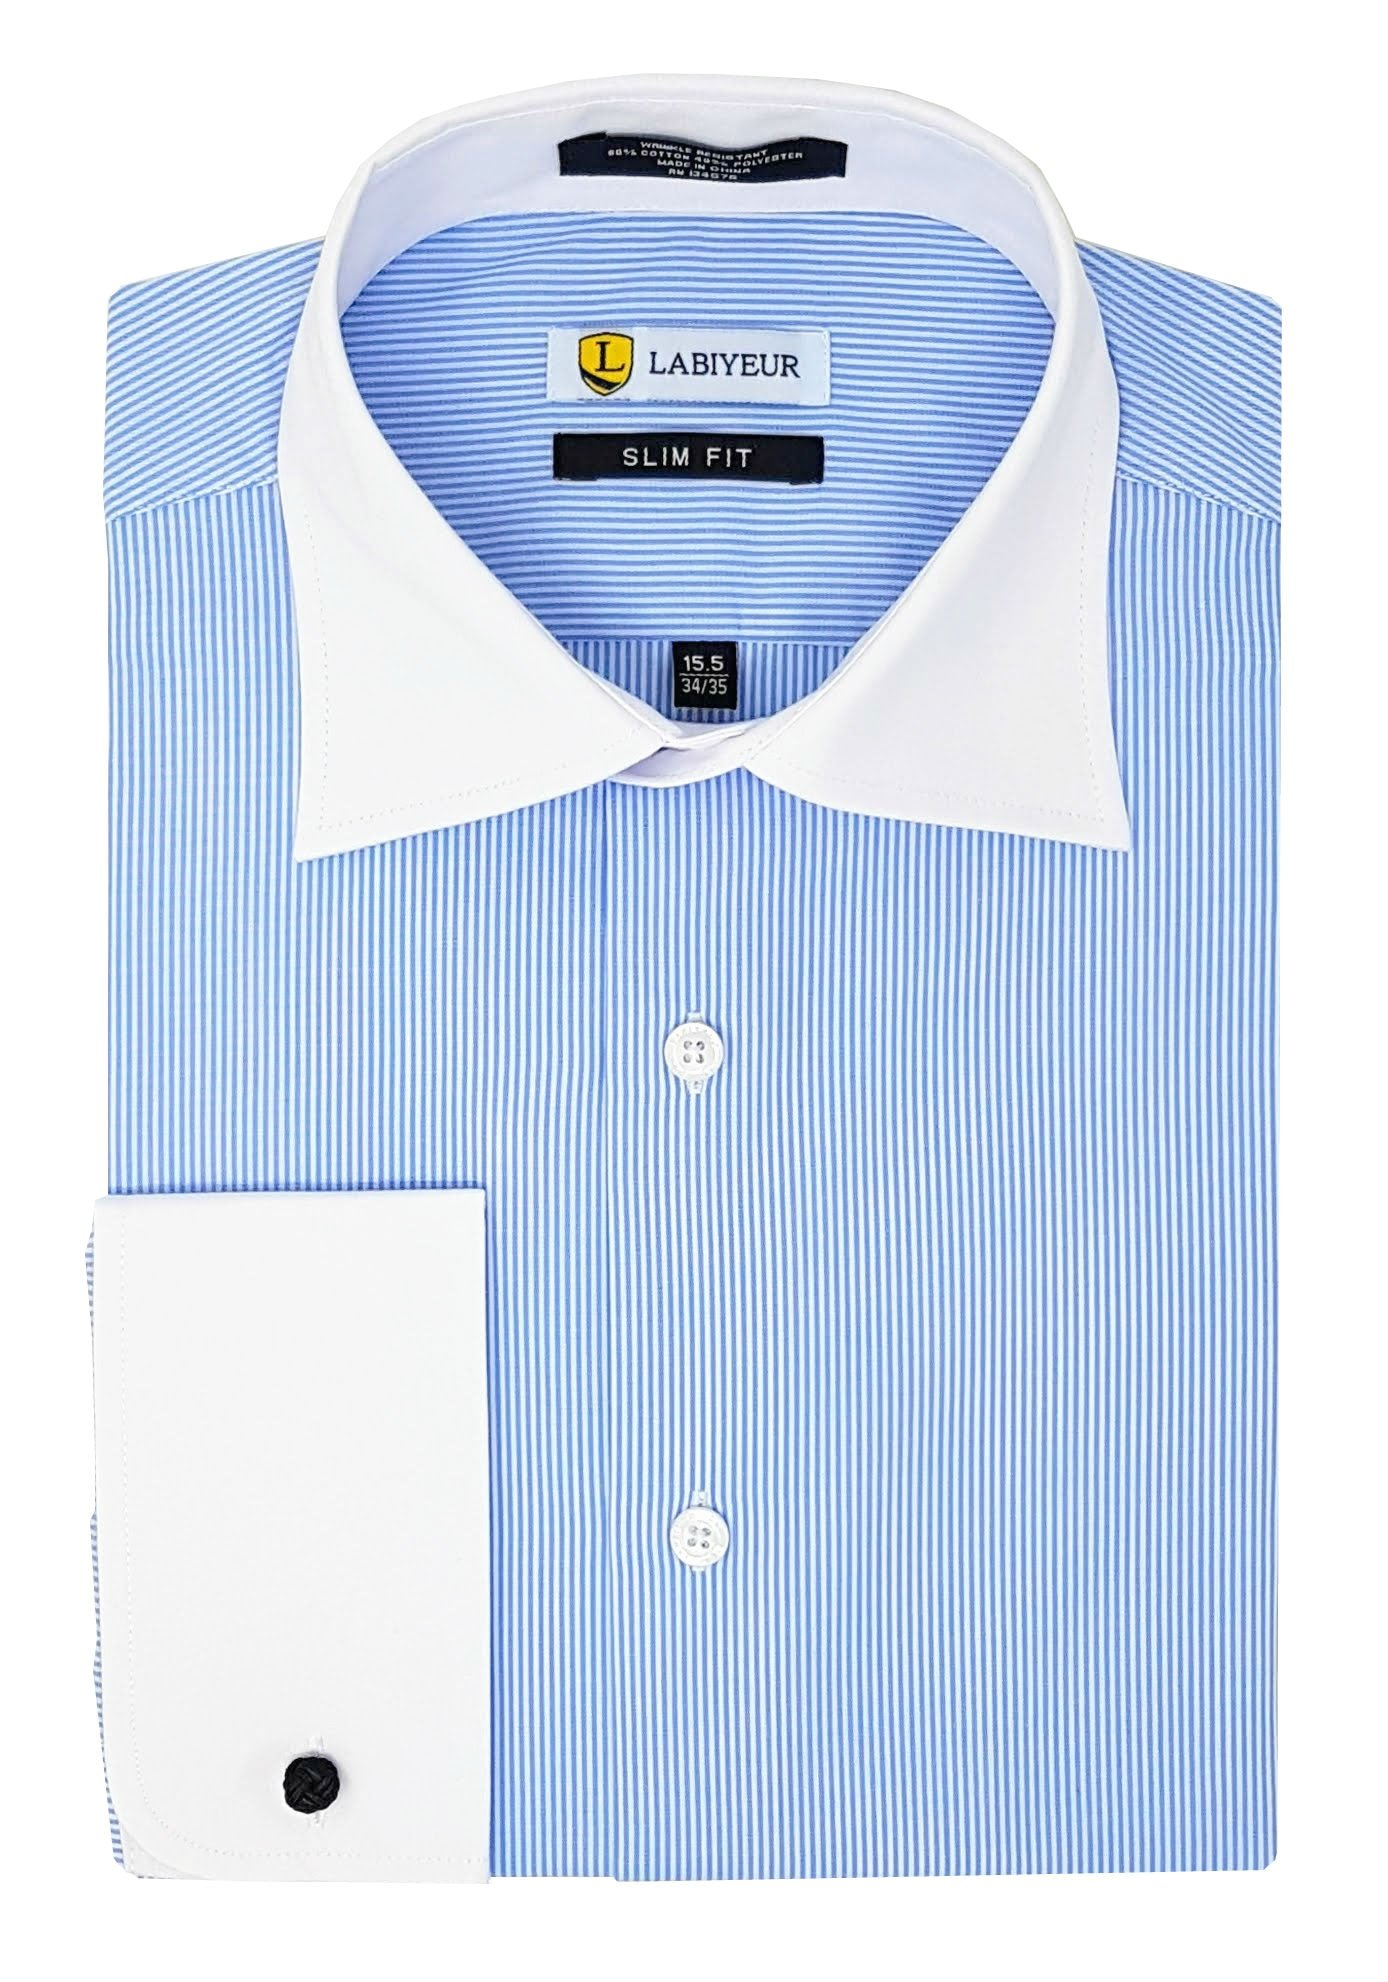 Labiyeur Men's Slim Fit French Cuff Striped Dress Shirt 15.5 | 32-33 Blue/White Fine Stripes